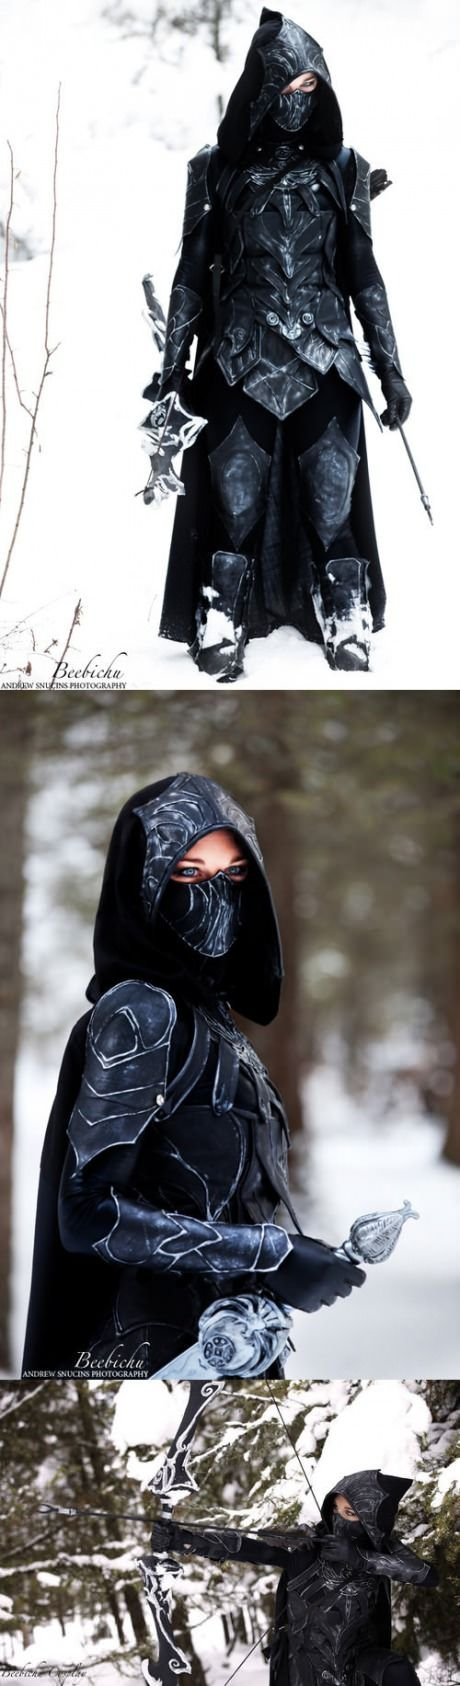 Skyrim Nightingale Armor Cosplay. Isn't this the best cosplay ever! - #skyrim #elderscrolls